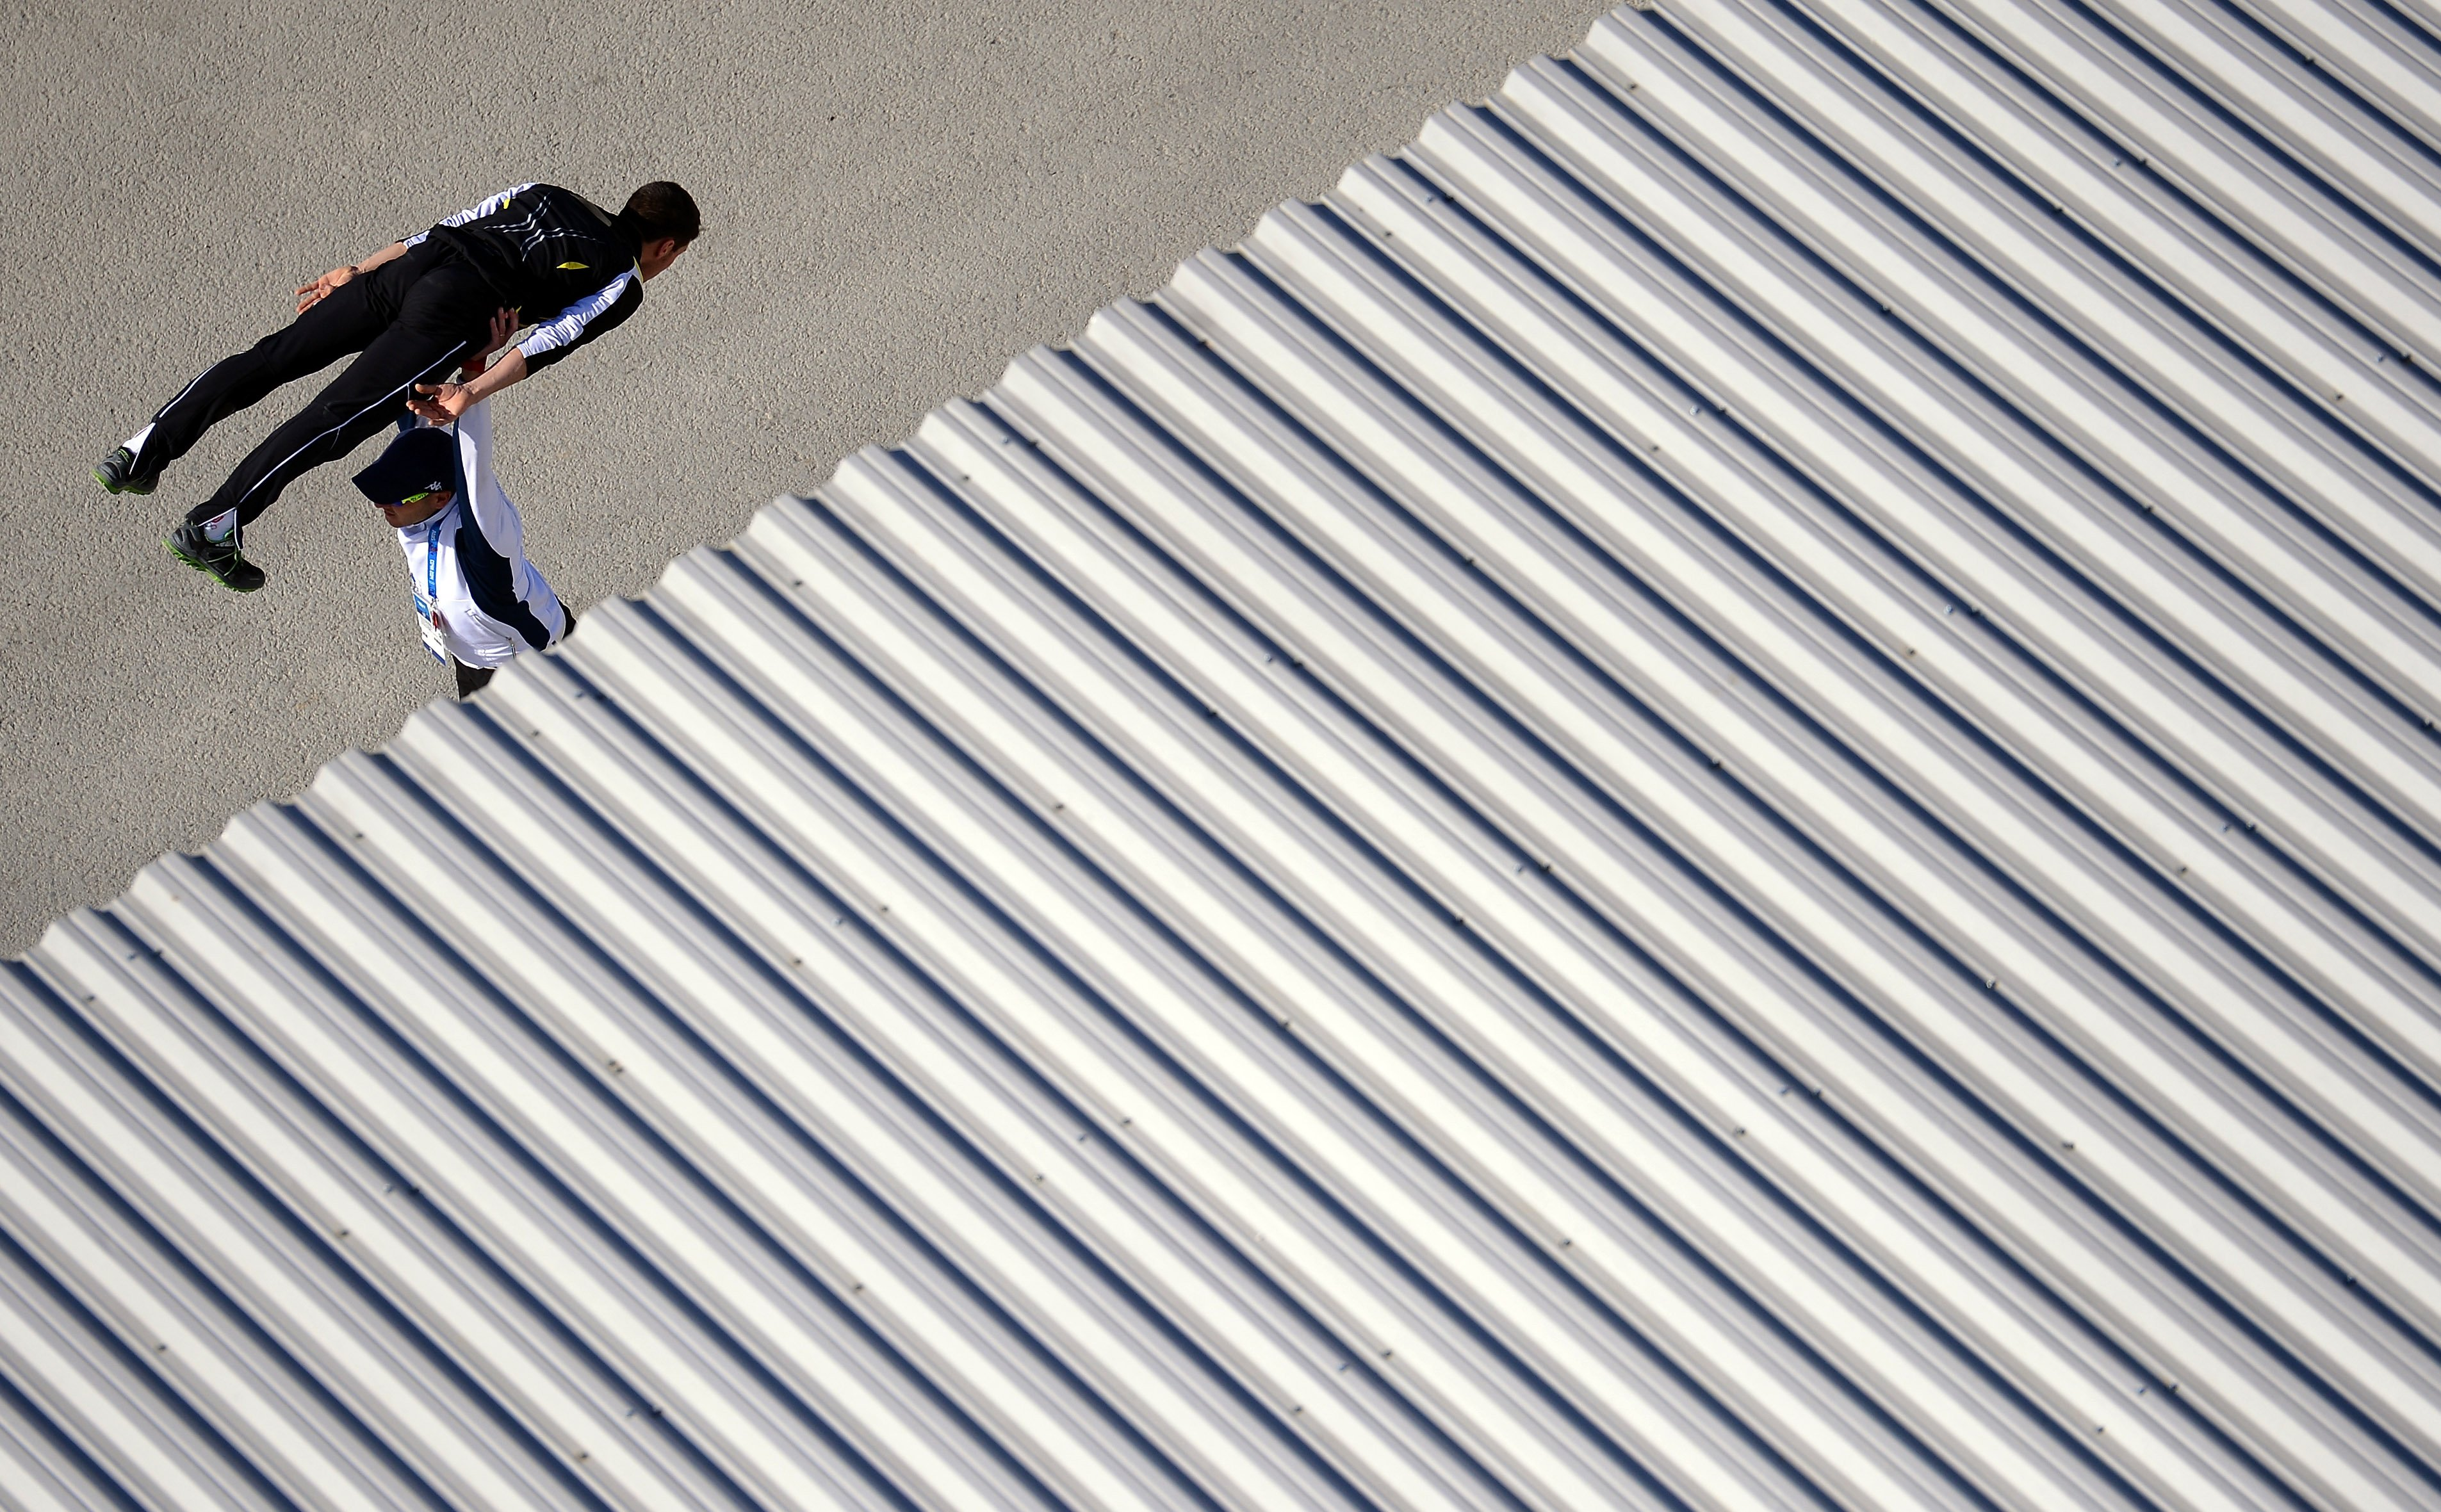 An athlete warms up with his coach prior to the Men's Individual Gundersen Large Hill/10 km Nordic Combined training Feb. 15, 2014 during the Sochi 2014 Winter Olympics in Sochi, Russia.